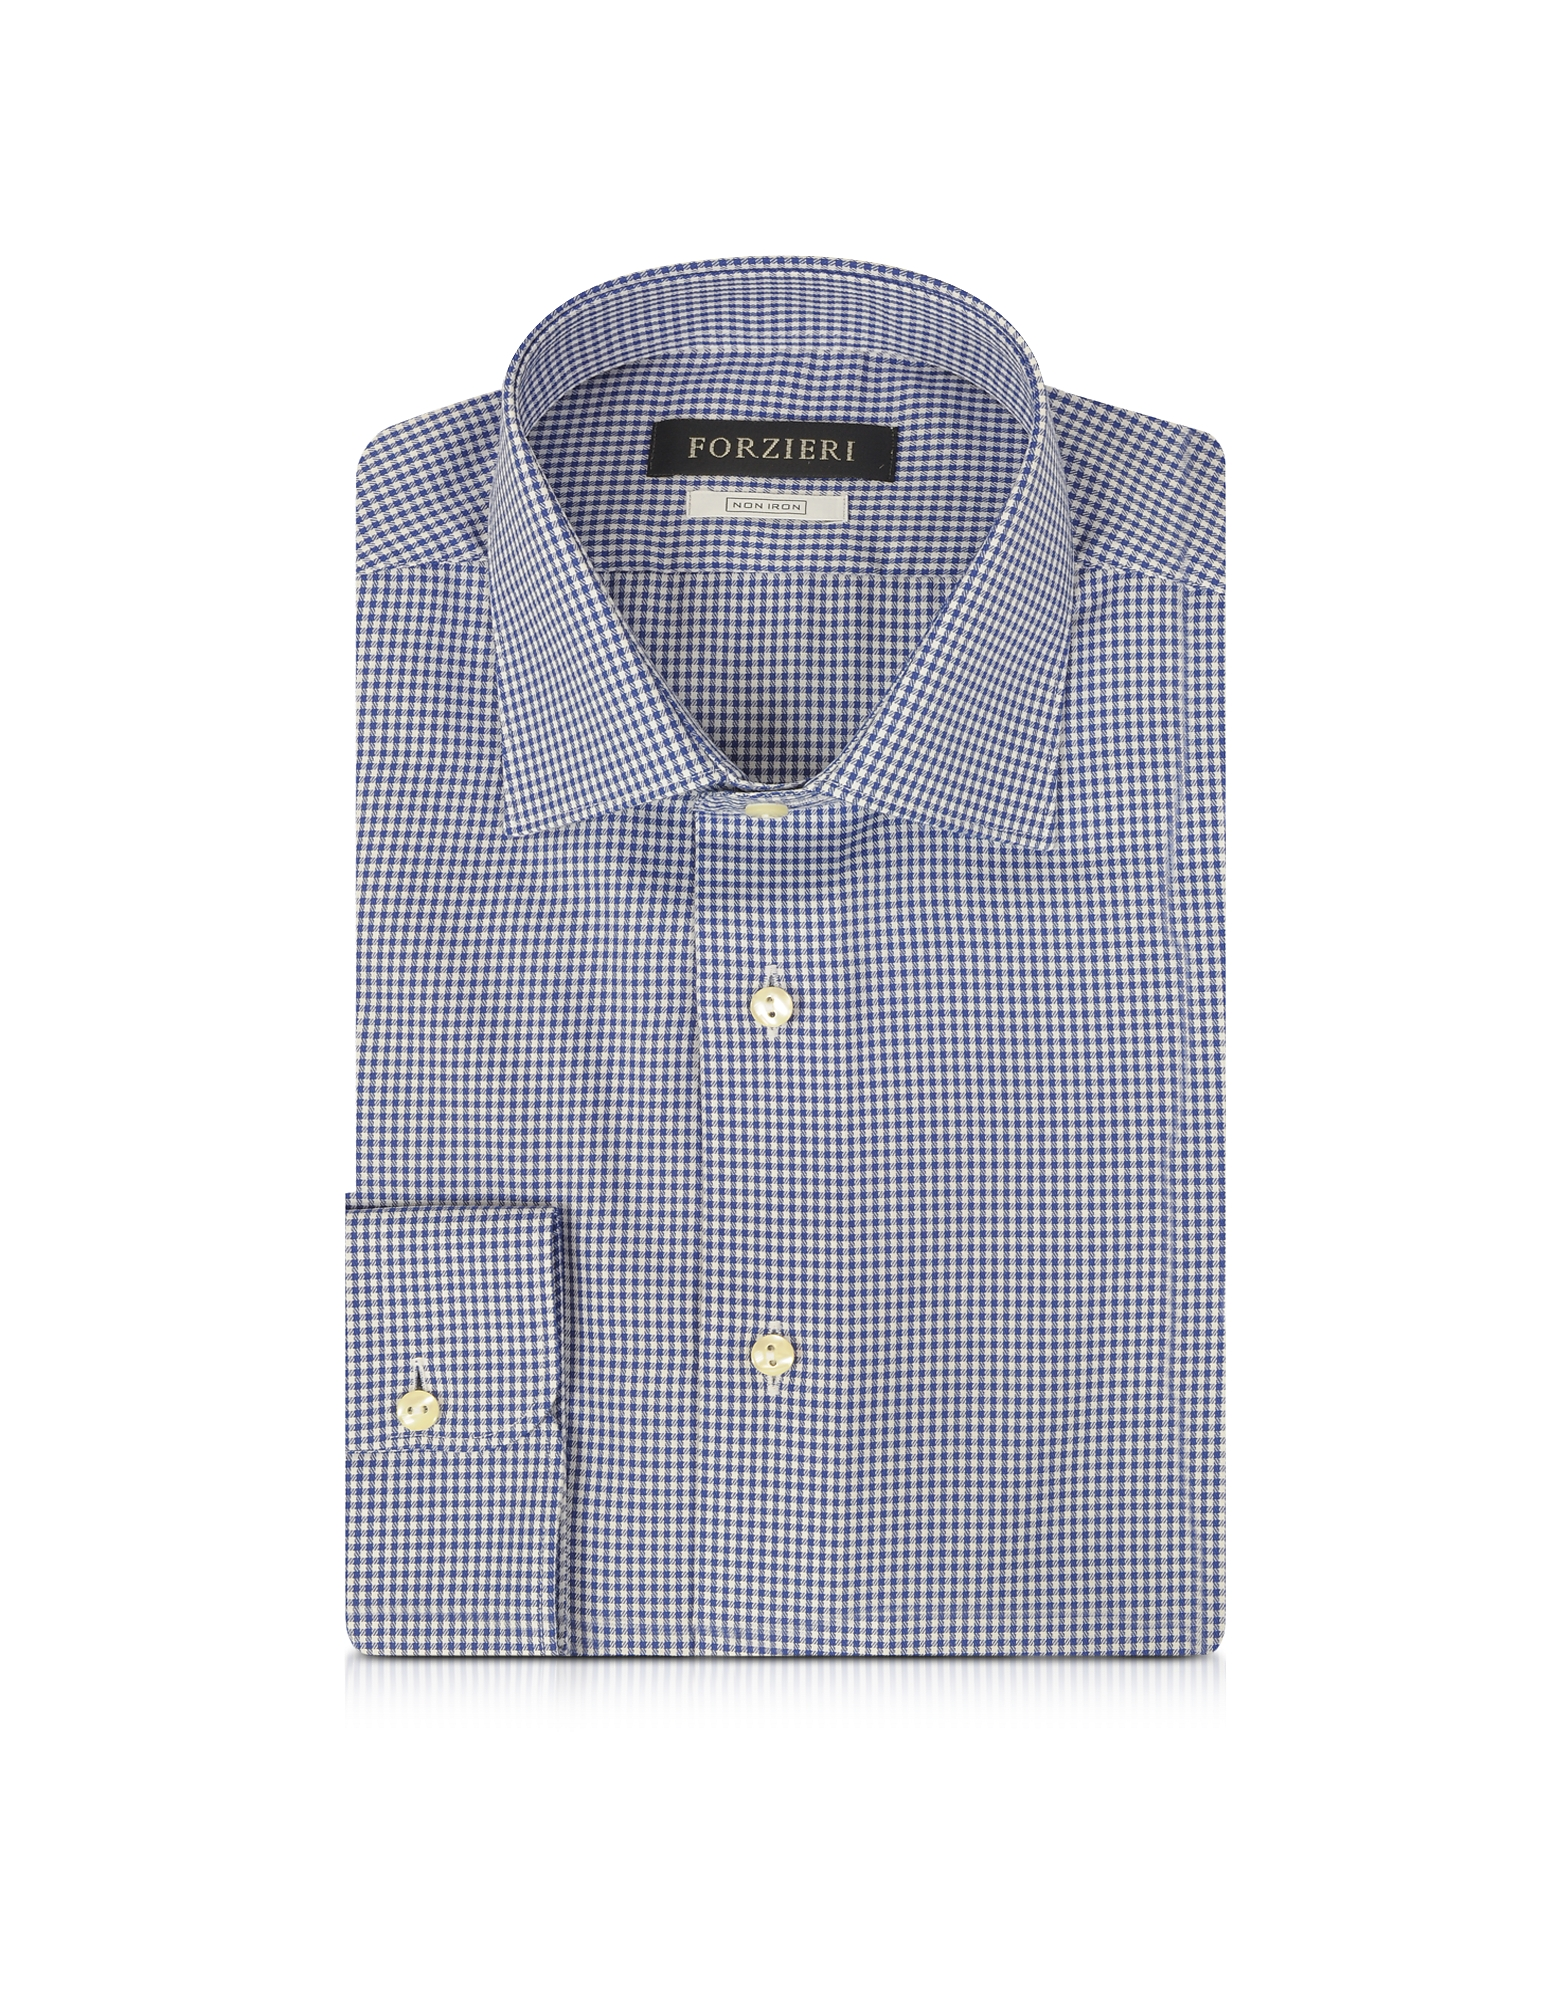 Blue & White Micro Checked Non Iron Cotton Men's Shirt